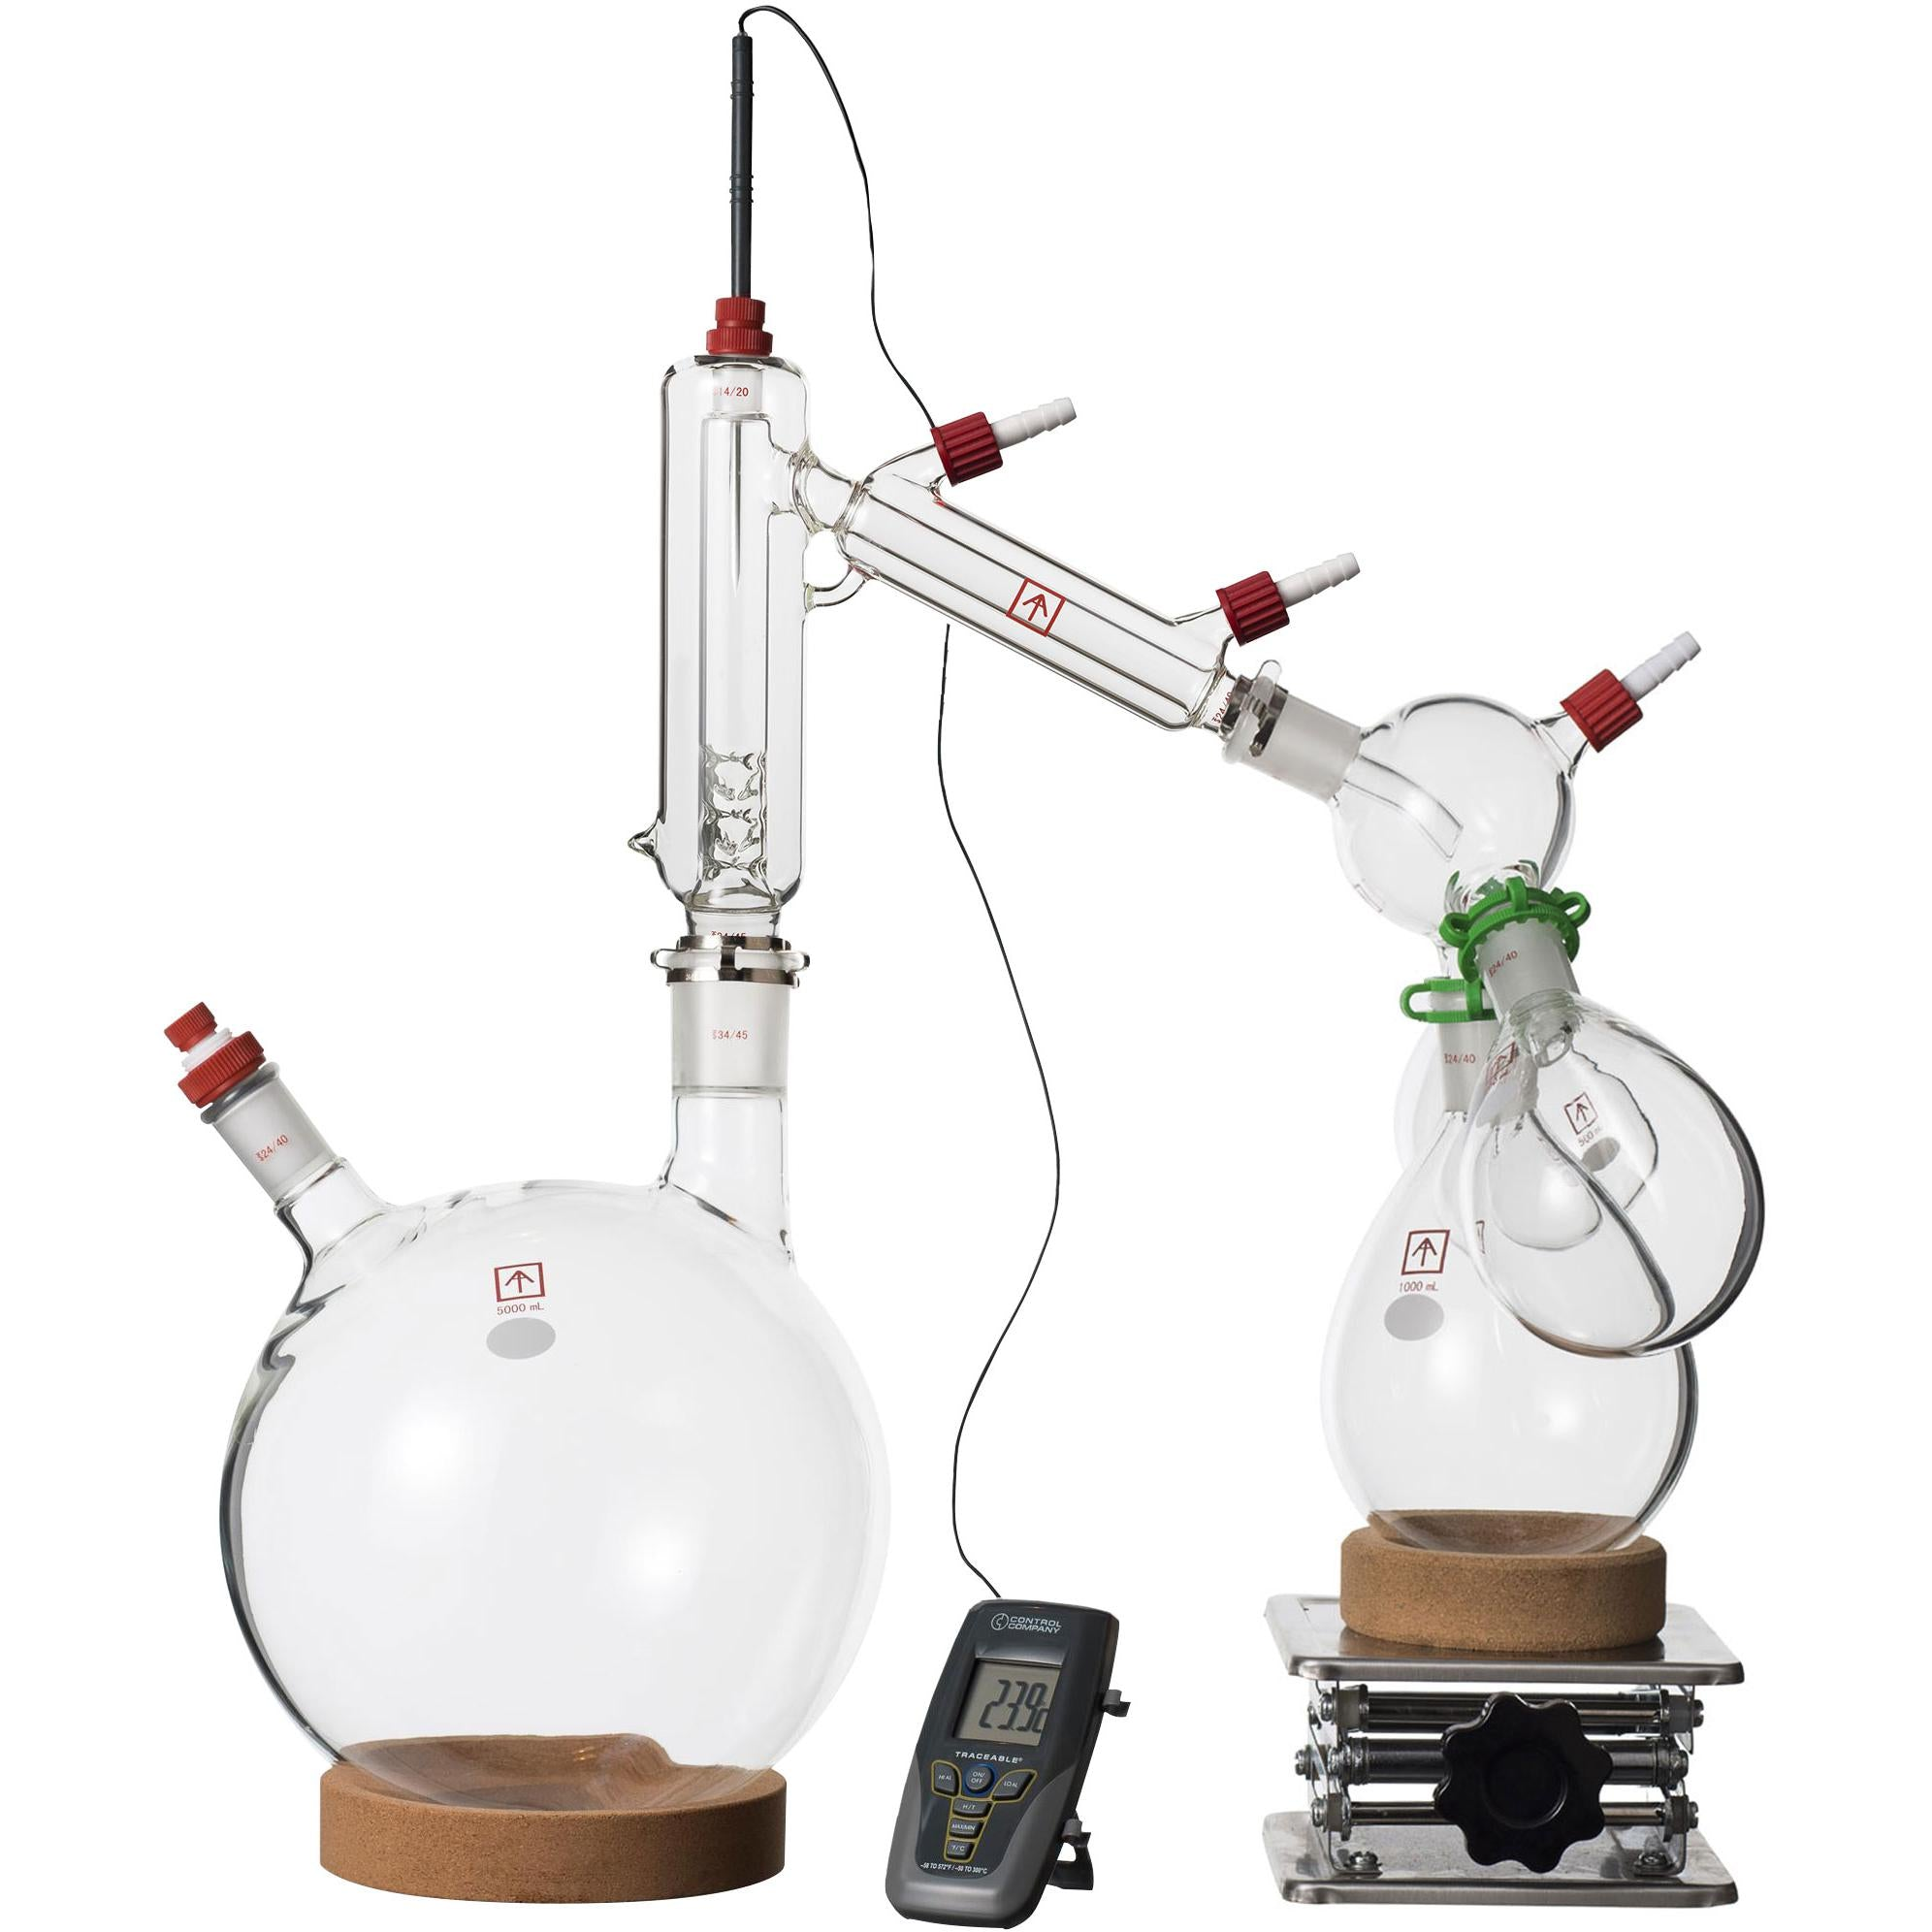 Ai 5L Short Path Distillation Kit, with Two Set-up Options